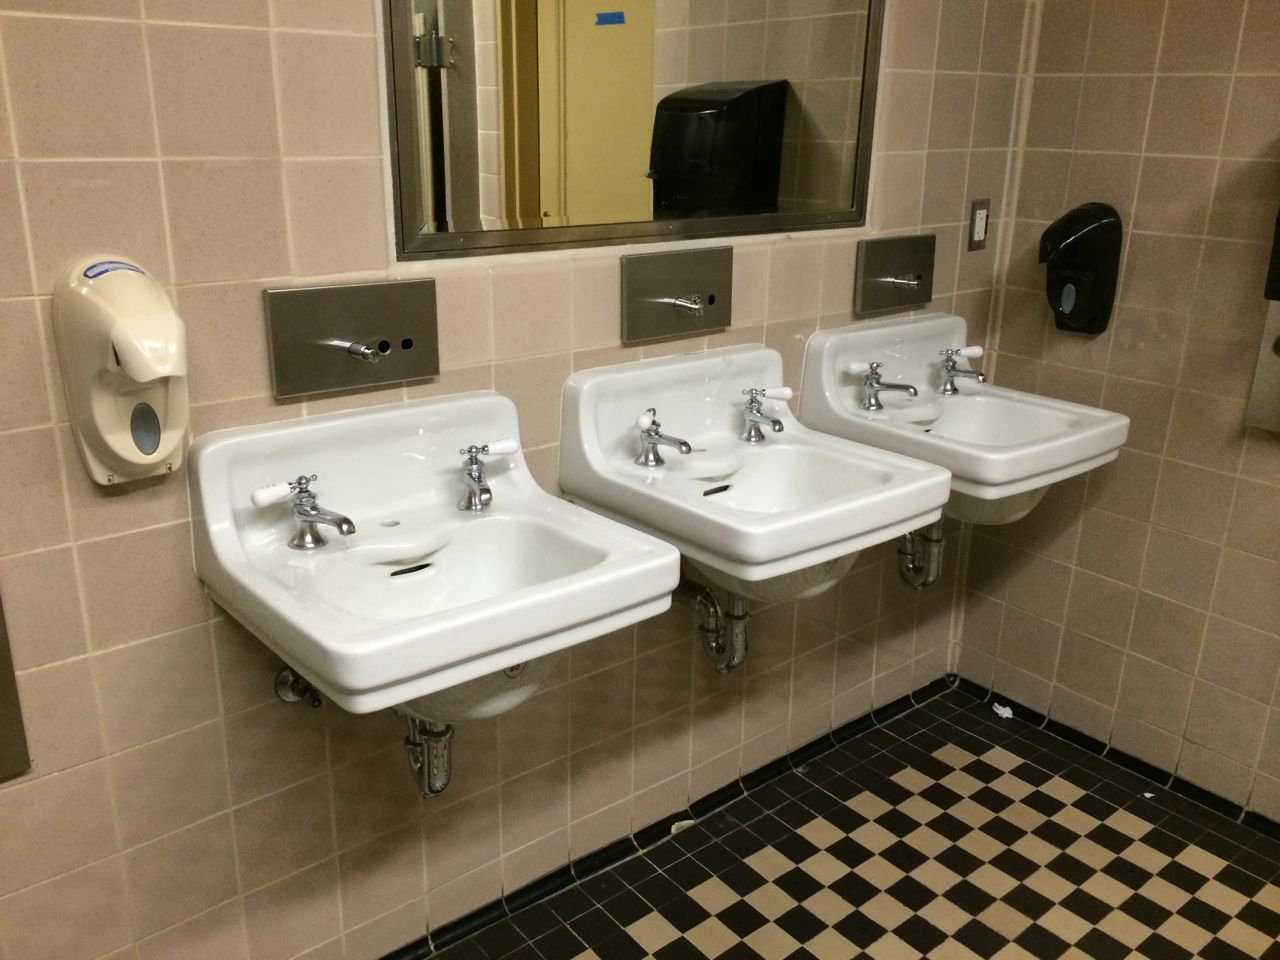 Bad Restroom Design Example – Geeky Girl Engineer